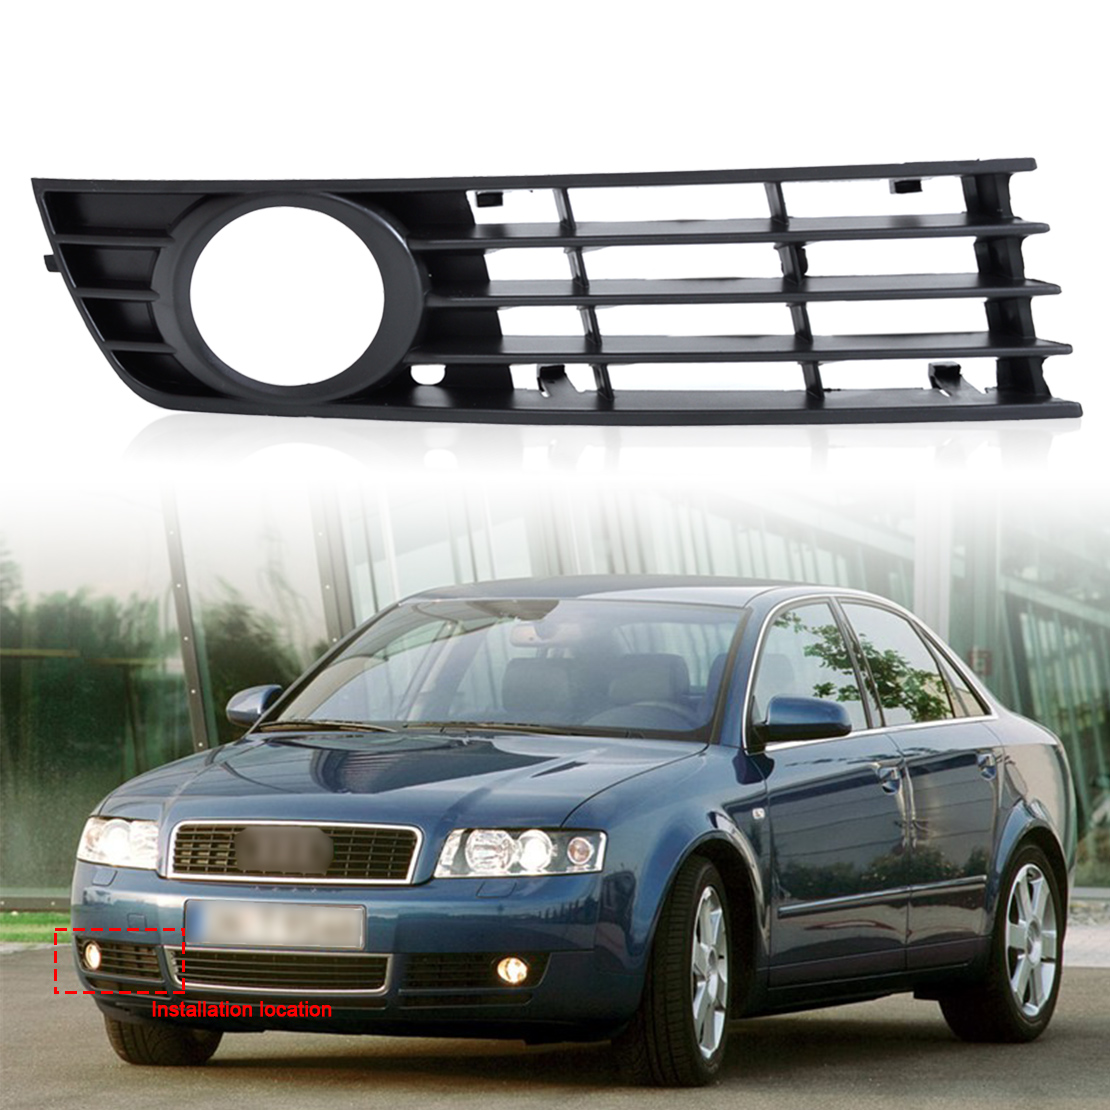 Beler ABS Plastic Grille Front Right Insert Bumper Fog Light Grille Protective Mesh 8E0807682 For Audi A4 B6 2002 2003 2004 2005